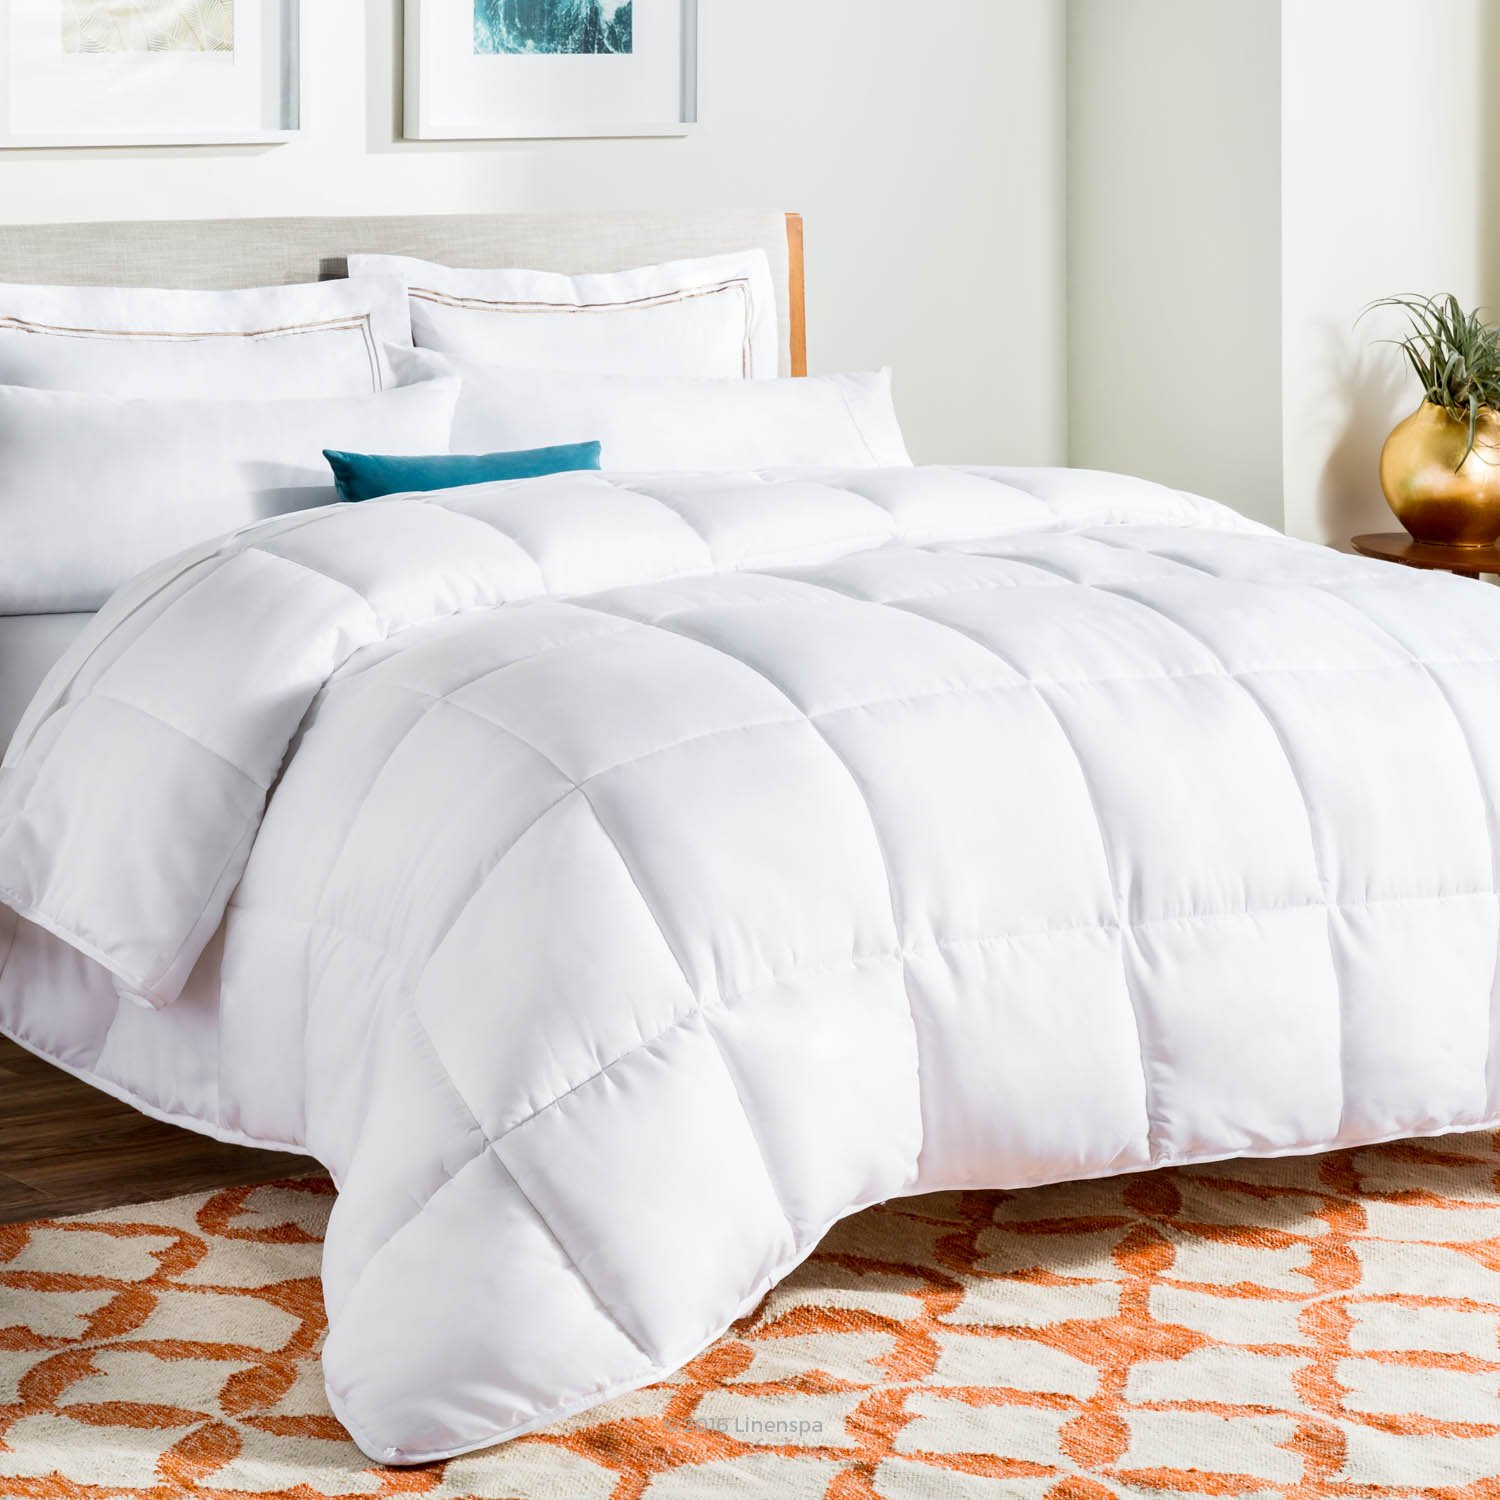 LINENSPA All-Season White Down Alternative Quilted Comforter - Corner Duvet Tabs - Hypoallergenic - Plush Microfiber Fill - Machine Washable - Duvet Insert or Stand-Alone Comforter - Queen by Linenspa